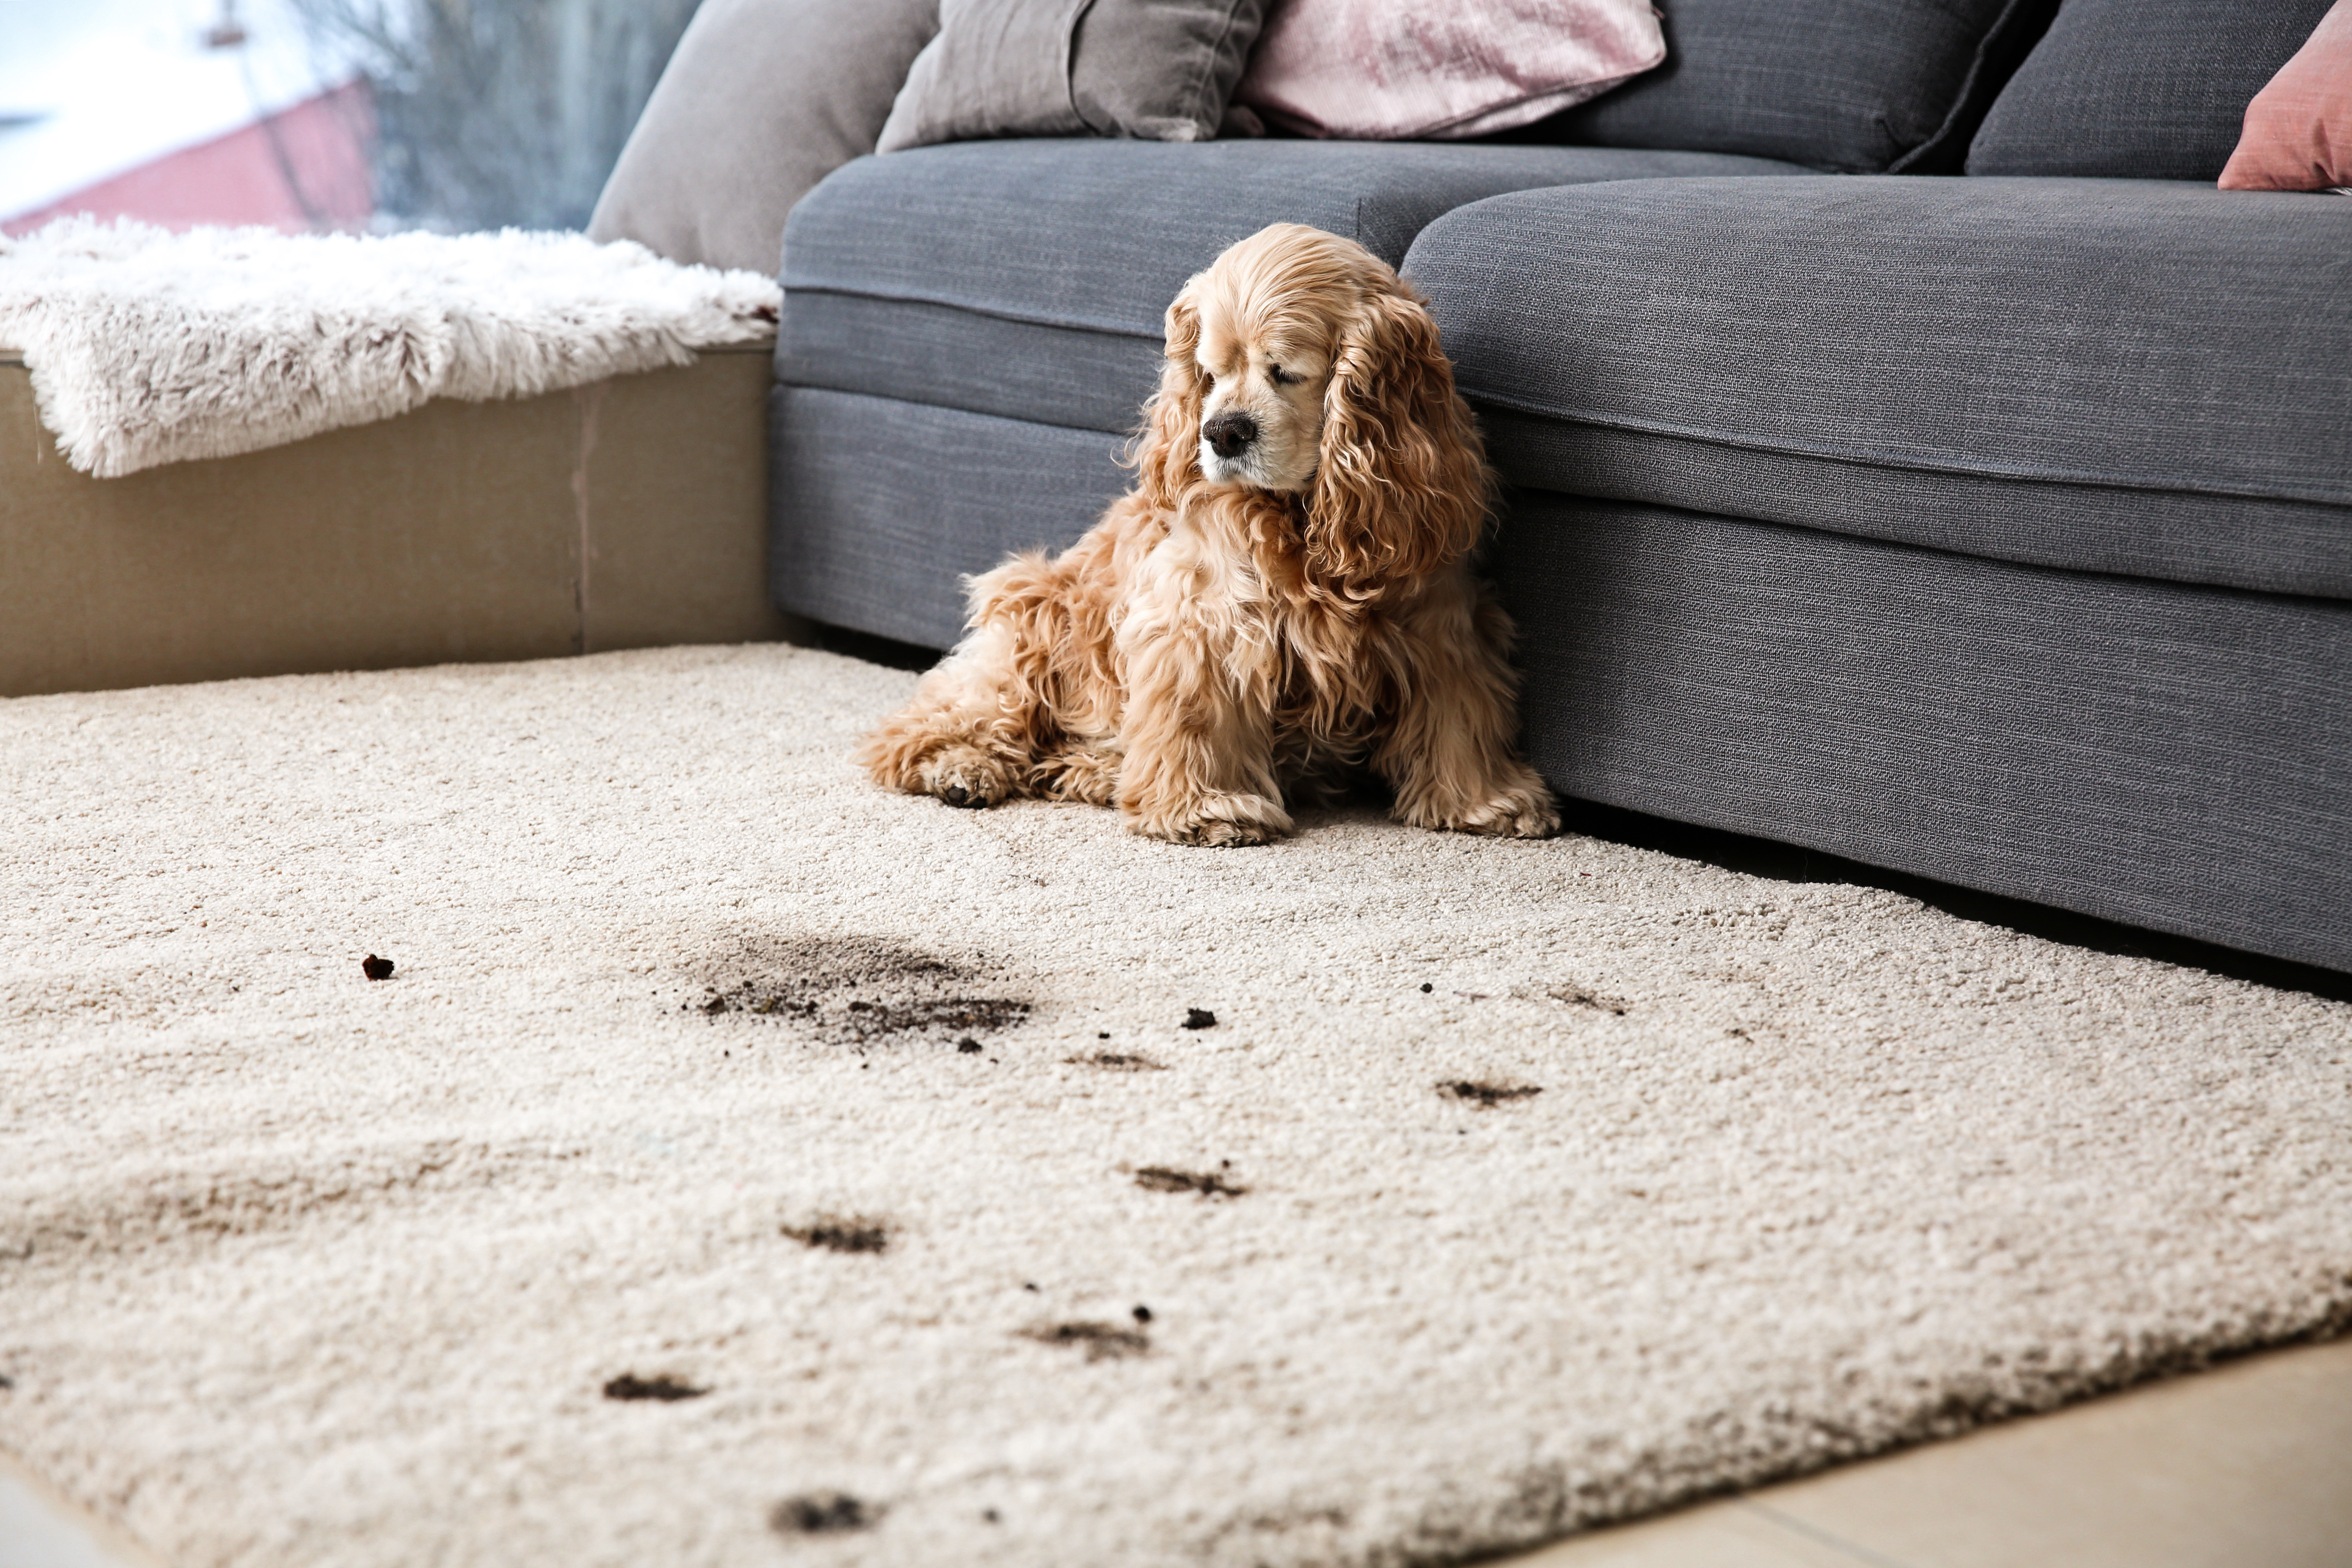 Cleaning carpets when you have pets or kids